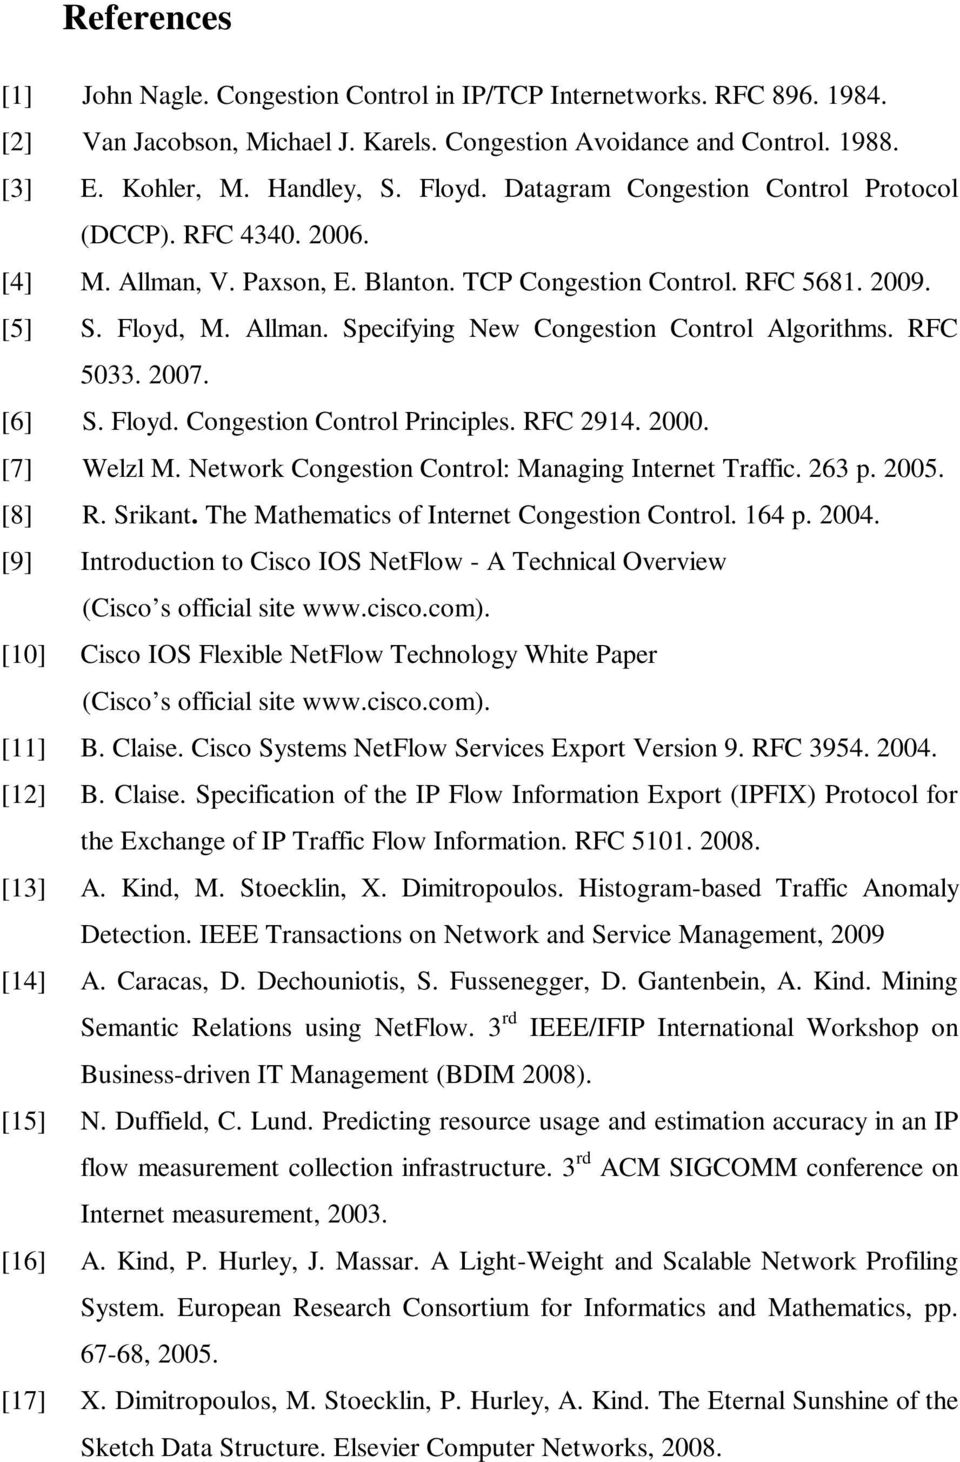 RFC 5033. 2007. [6] S. Floyd. Congestion Control Principles. RFC 2914. 2000. [7] Welzl M. Network Congestion Control: Managing Internet Traffic. 263 p. 2005. [8] R. Srikant.